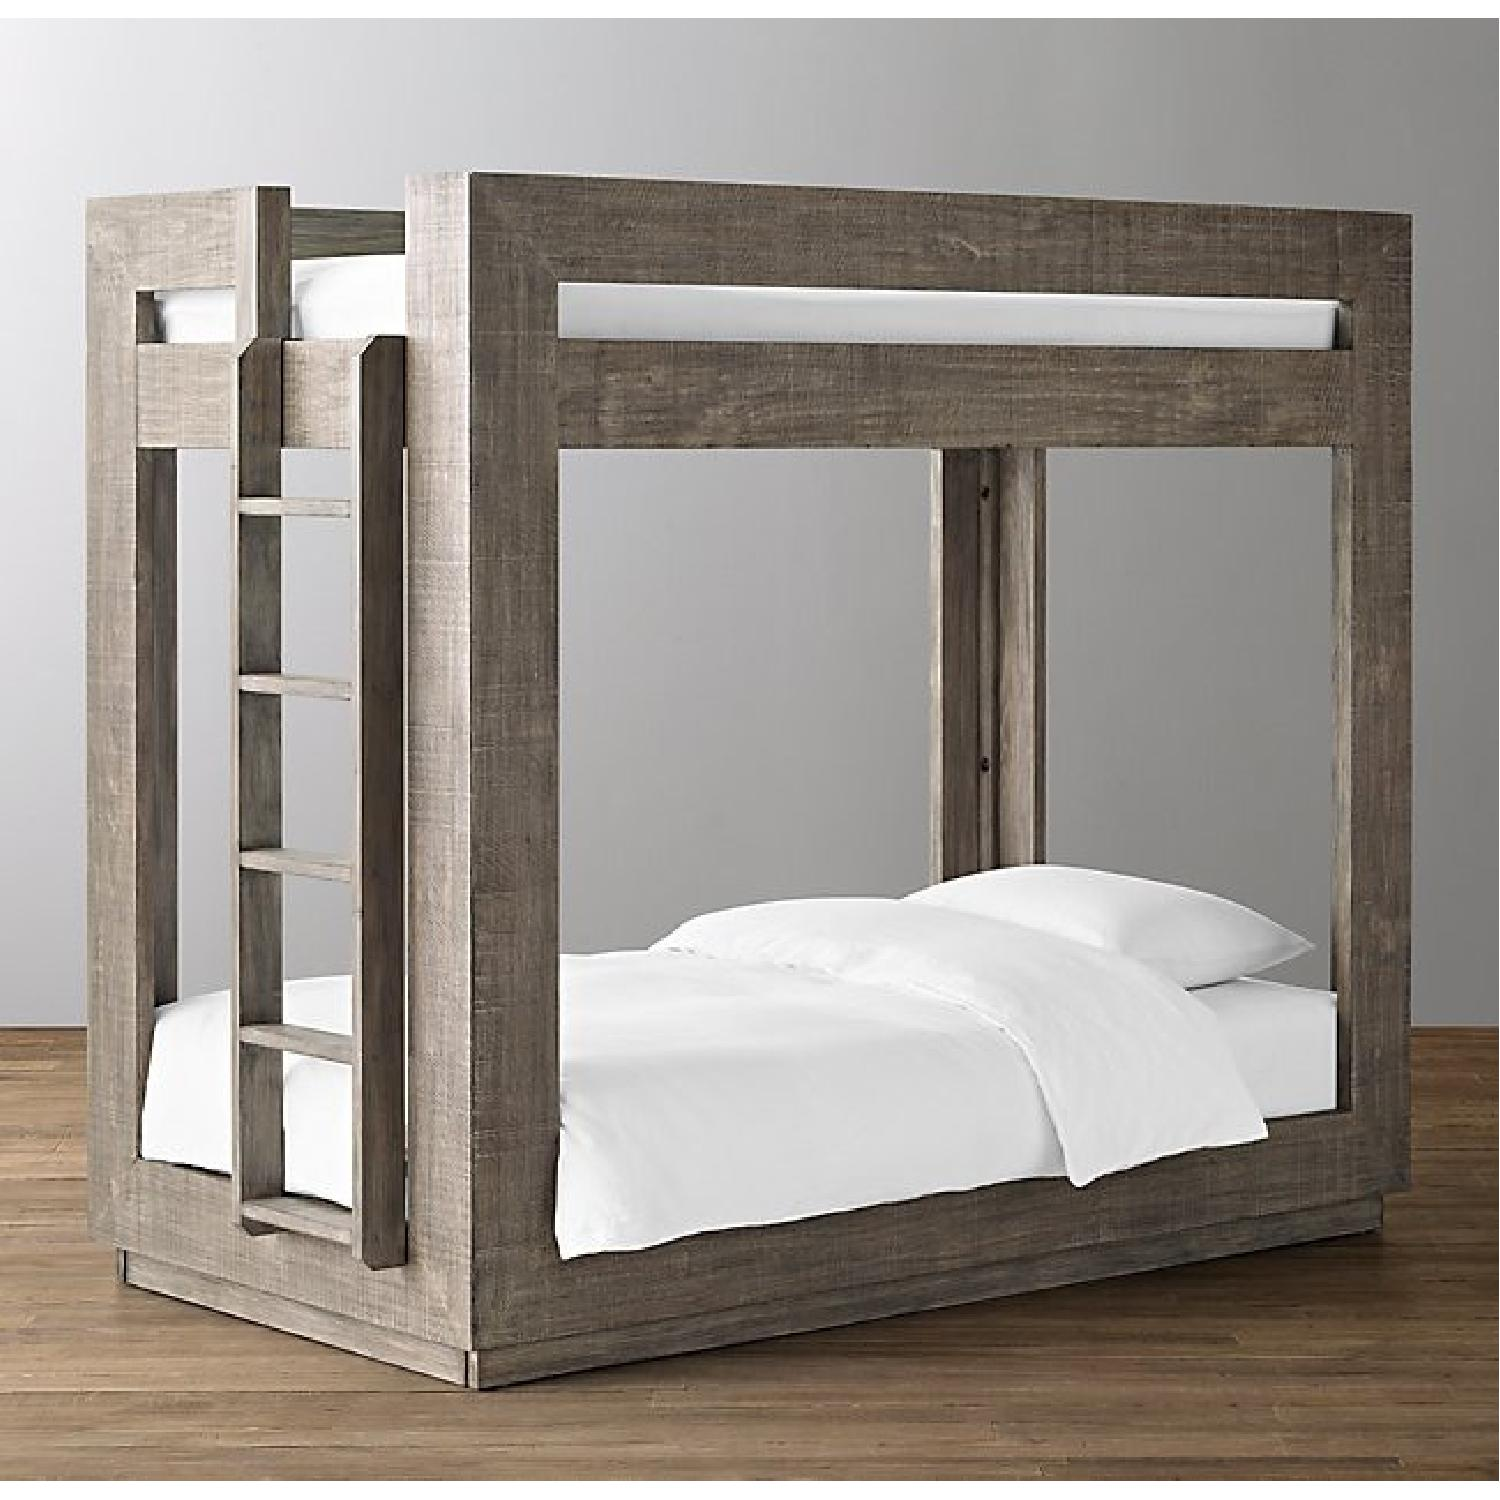 Restoration Hardware Thayer Bunk Bed - image-4